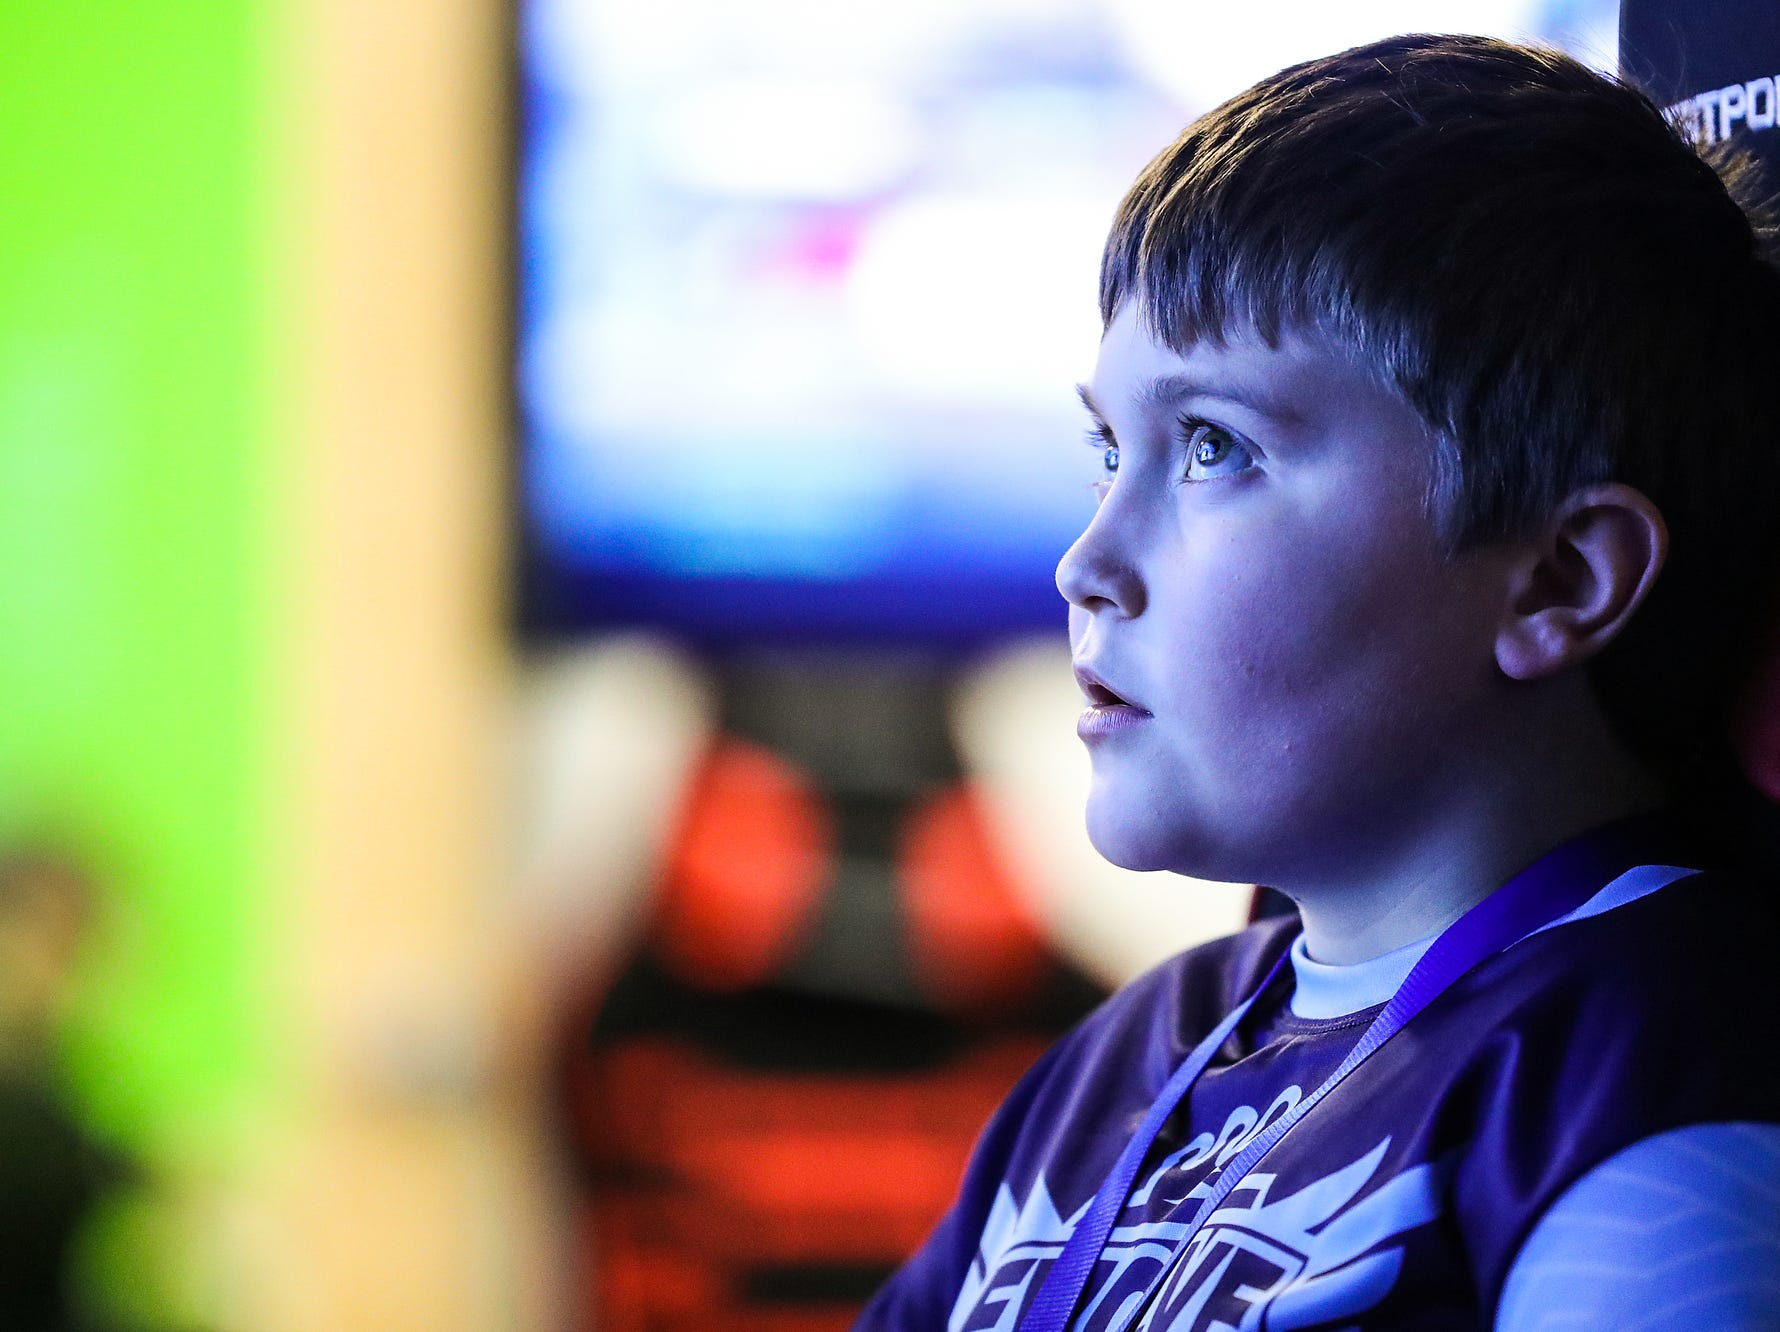 Parker Suter, 11, competes with teammates in a video game at an Evolve Youth Sports practice at the Player One arena in Carmel, Ind., Thursday, Jan. 24, 2019. Scott Wise, original founder of Scotty's Brewhouse, has partnered with Player One Esports for his next venture, a video game sports league that has attracted around 200 kids so far.